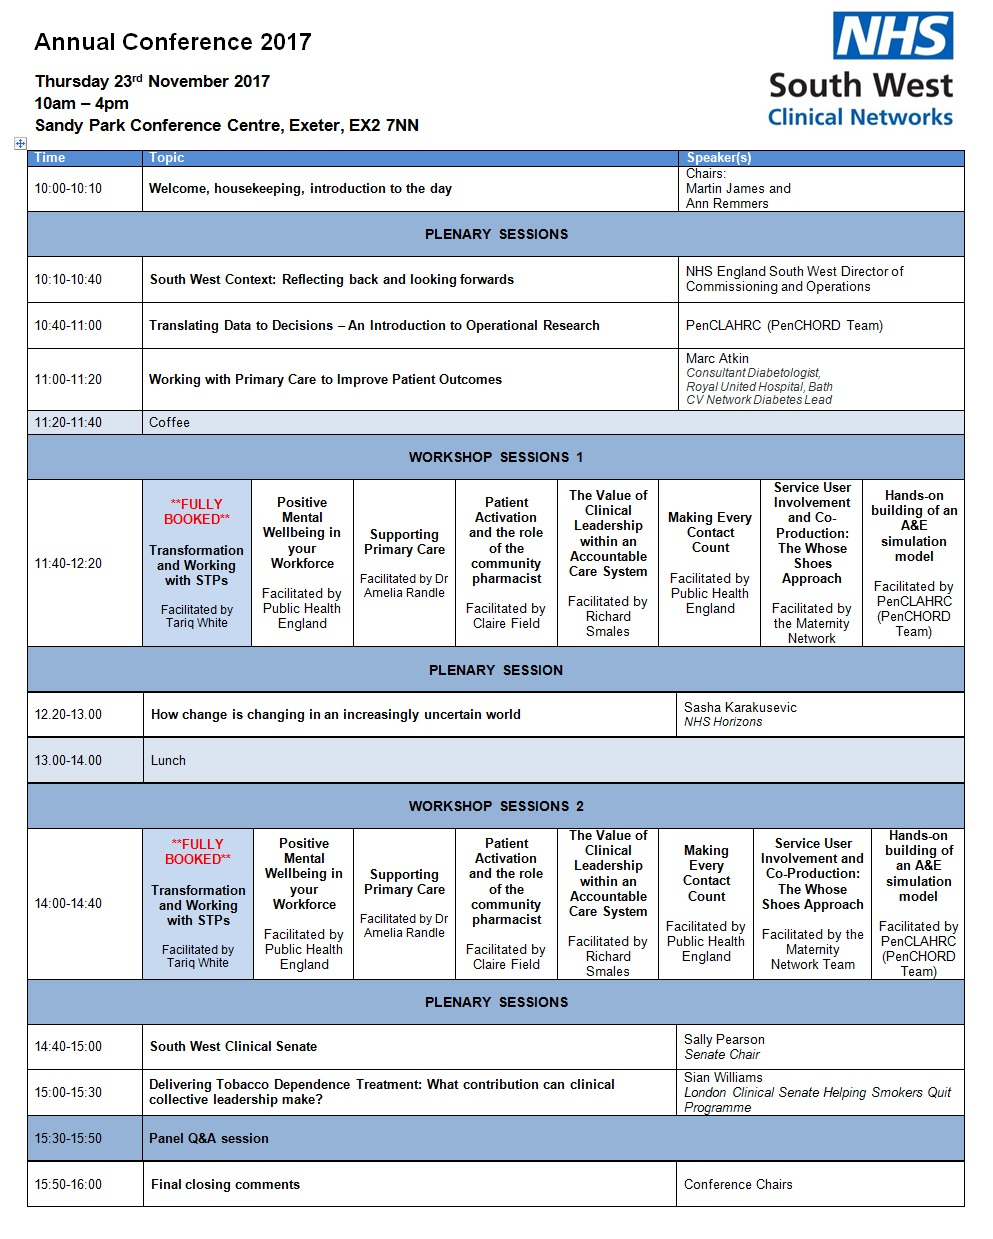 South West Strategic Clinical Network Annual Conference Agenda